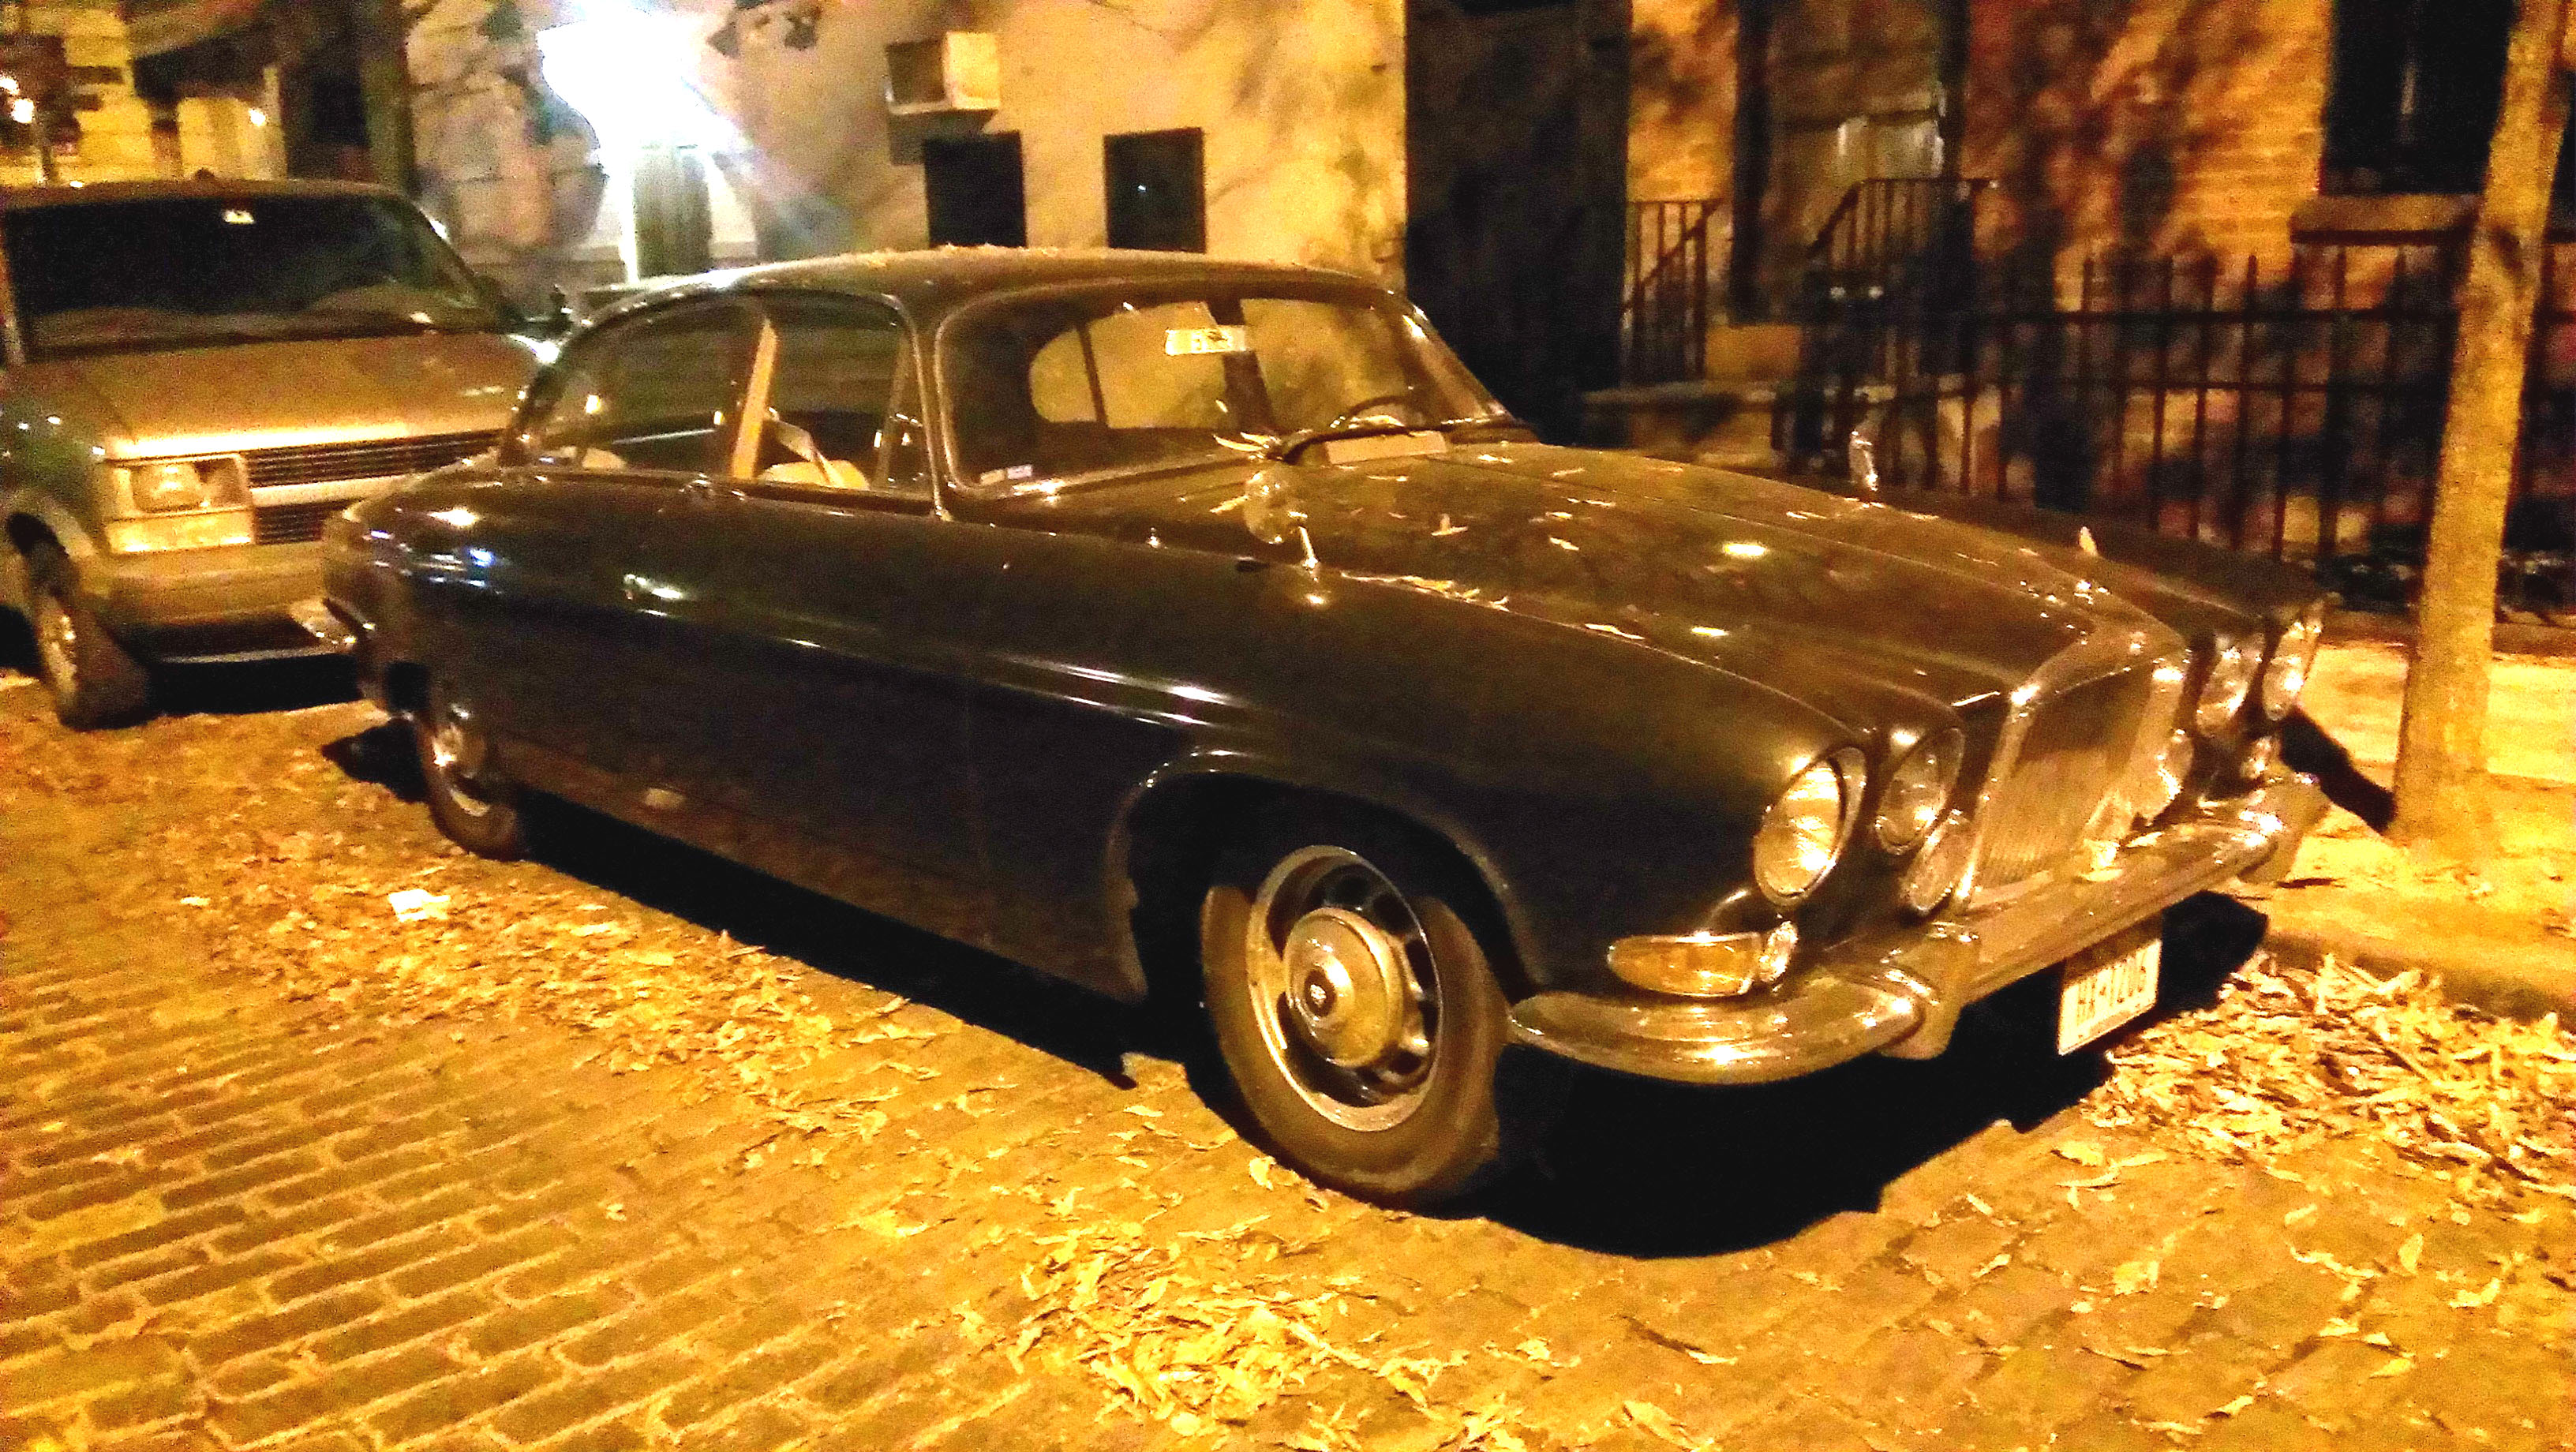 car for door a by coventry particularly in england jaguar saloon tullow sale with essentially launched produced late s rebadged vintage history four mark daimler members club fitted cars